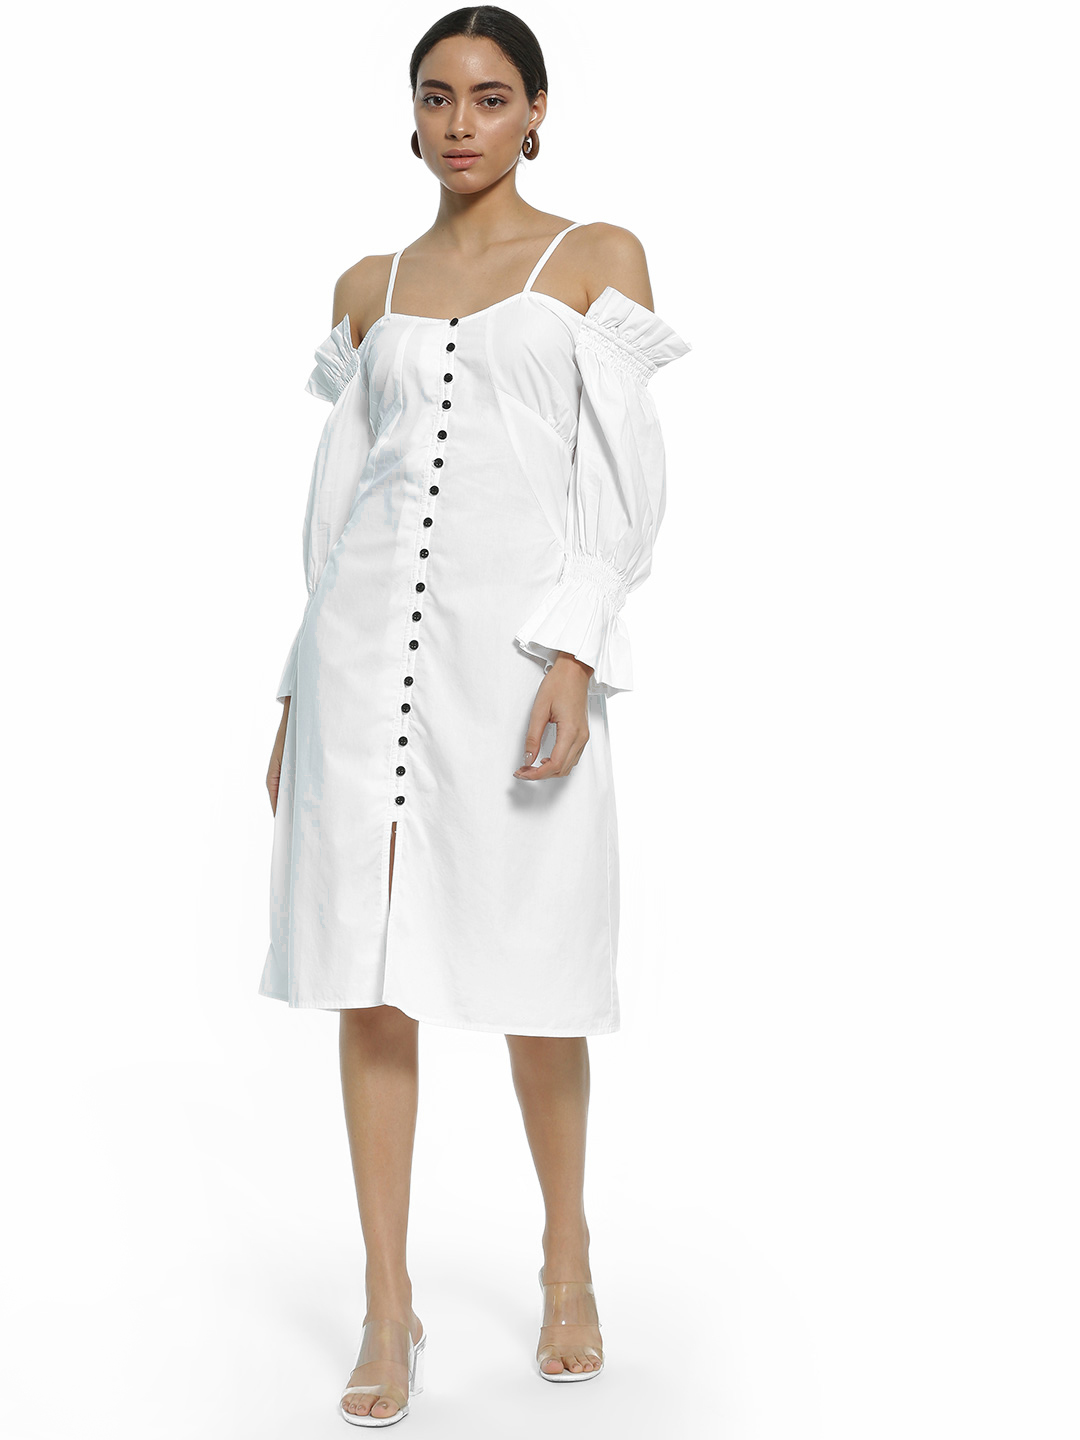 Ri-Dress White Button-Down Cold Shoulder Midi Dress 1